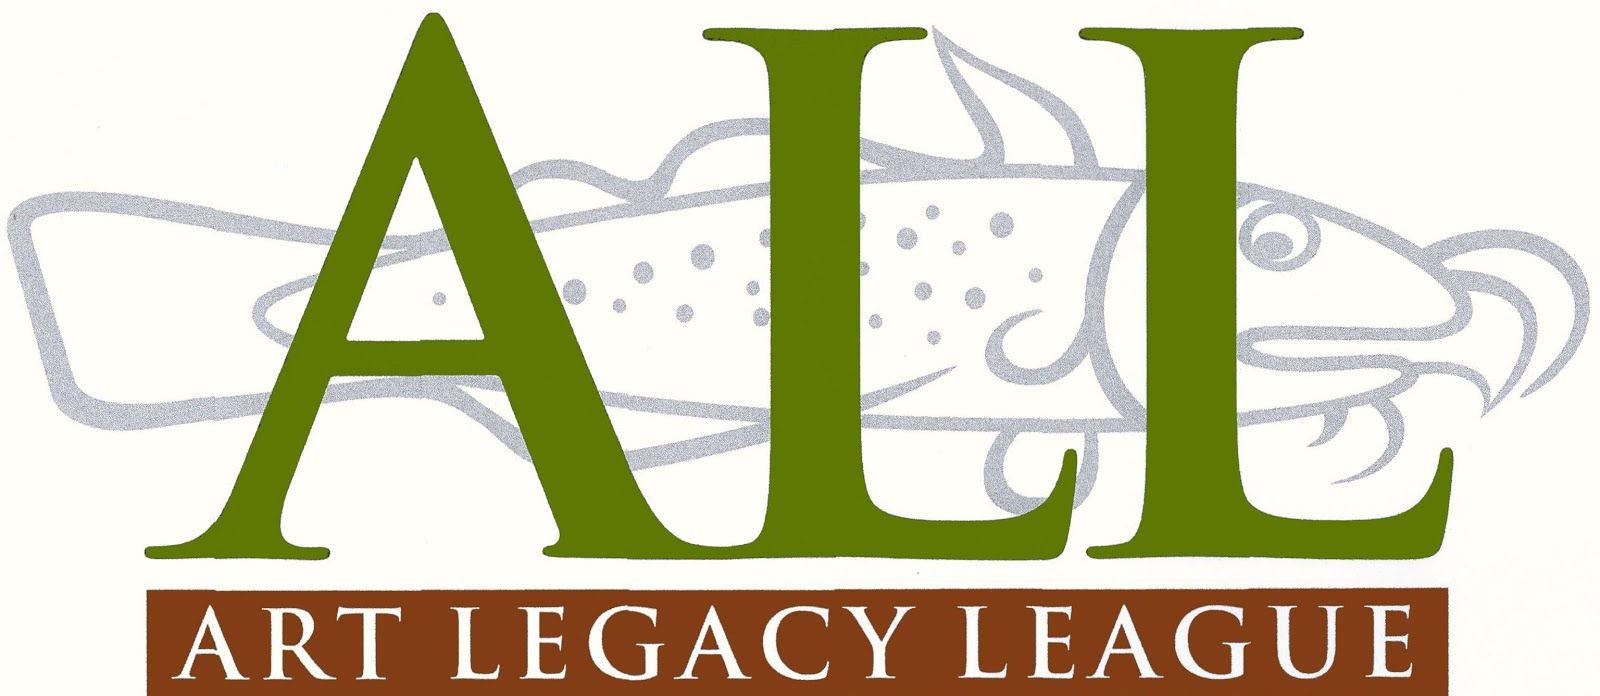 The Art Legacy League